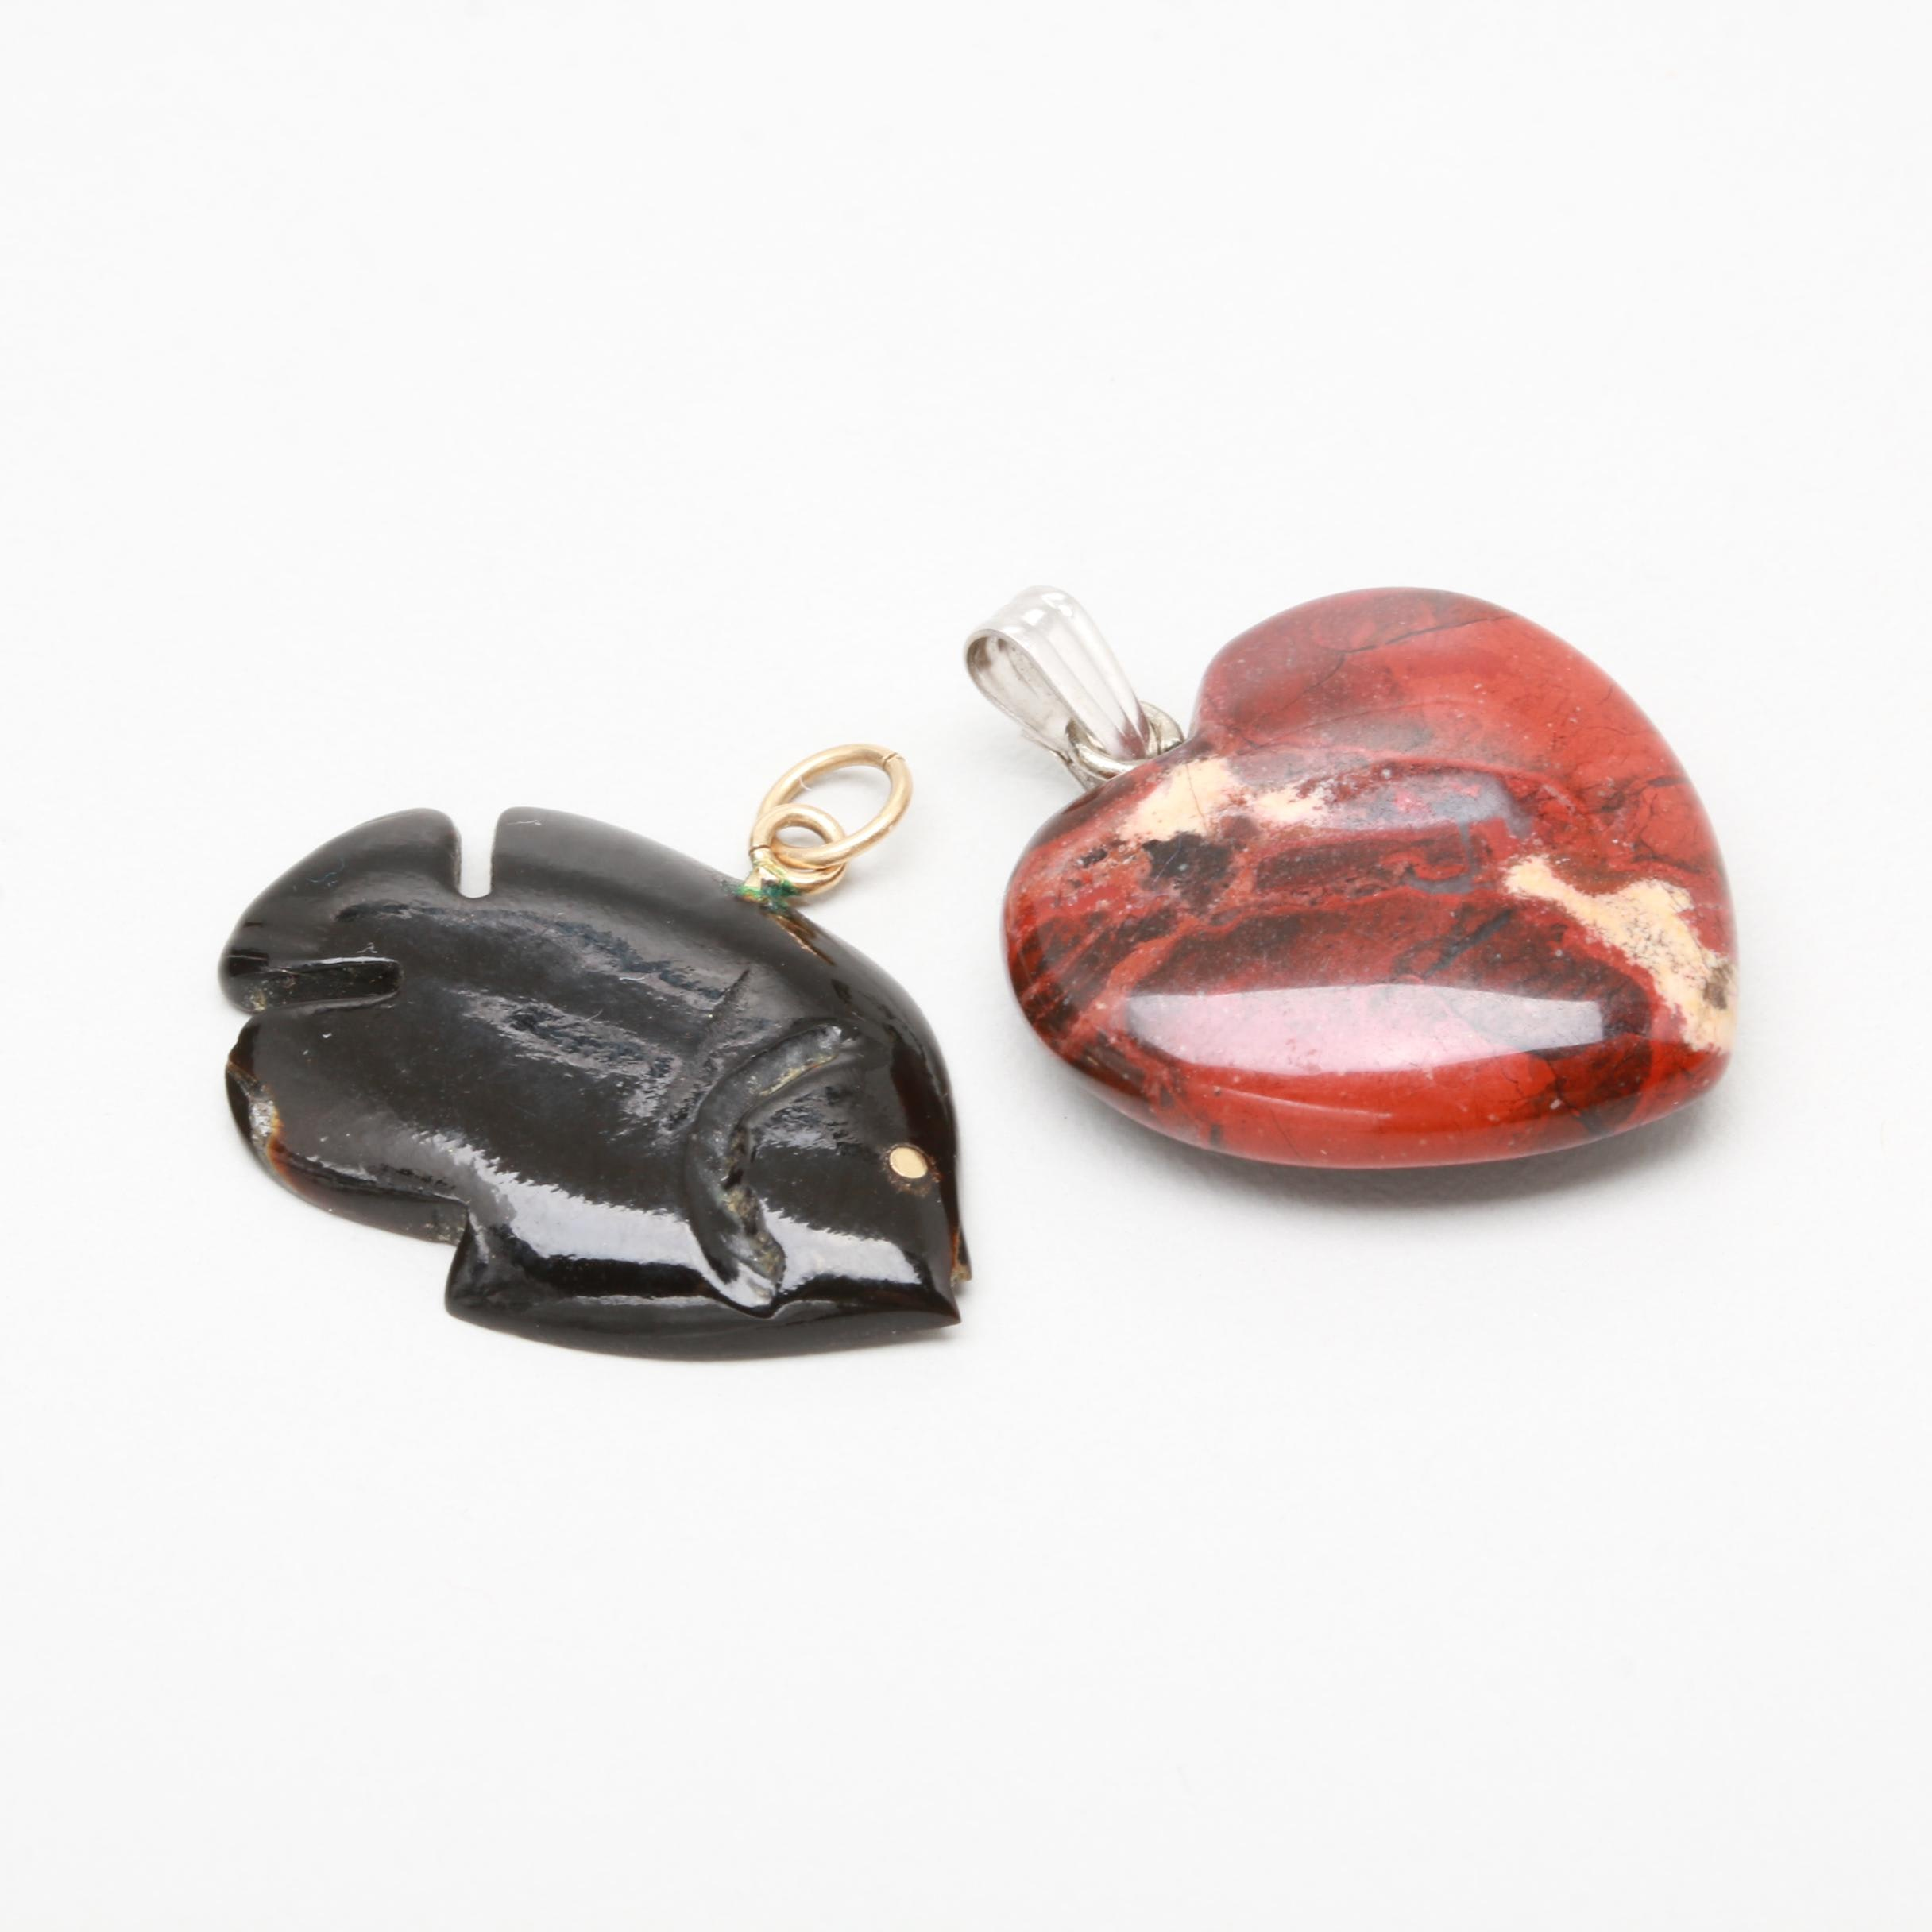 14K Yellow and White Gold Jasper and Black Coral Pendants